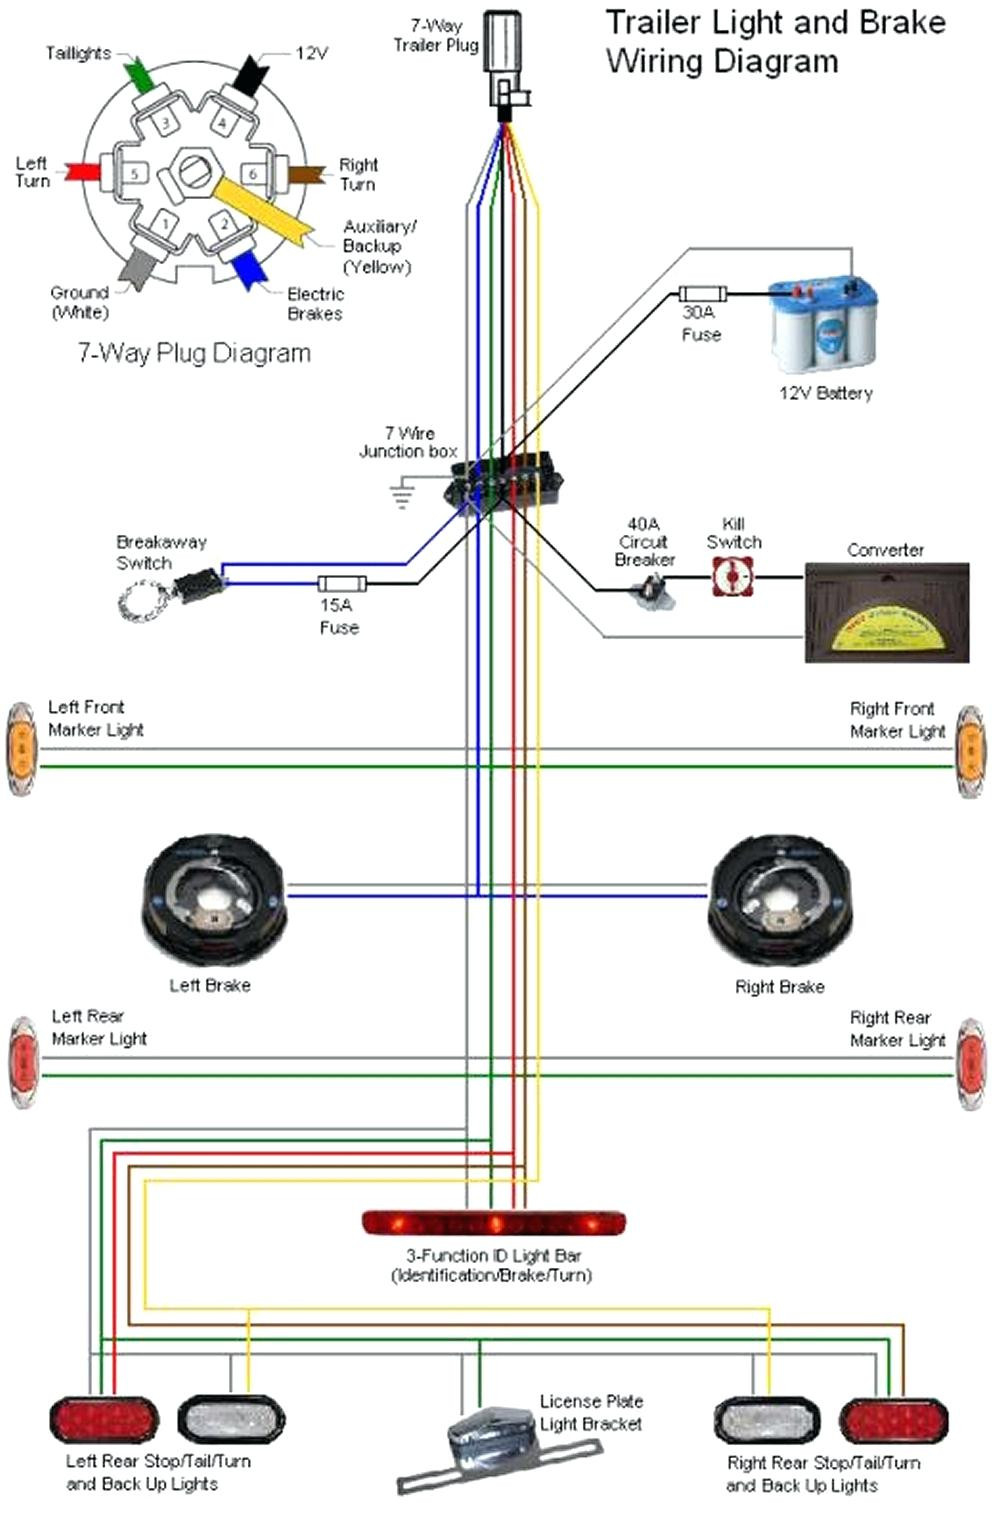 5 way flat trailer wiring diagram Download-5 Pin Flat Trailer Wiring Diagram Best 7 Wire For With Way Roc Grp Org 9-t